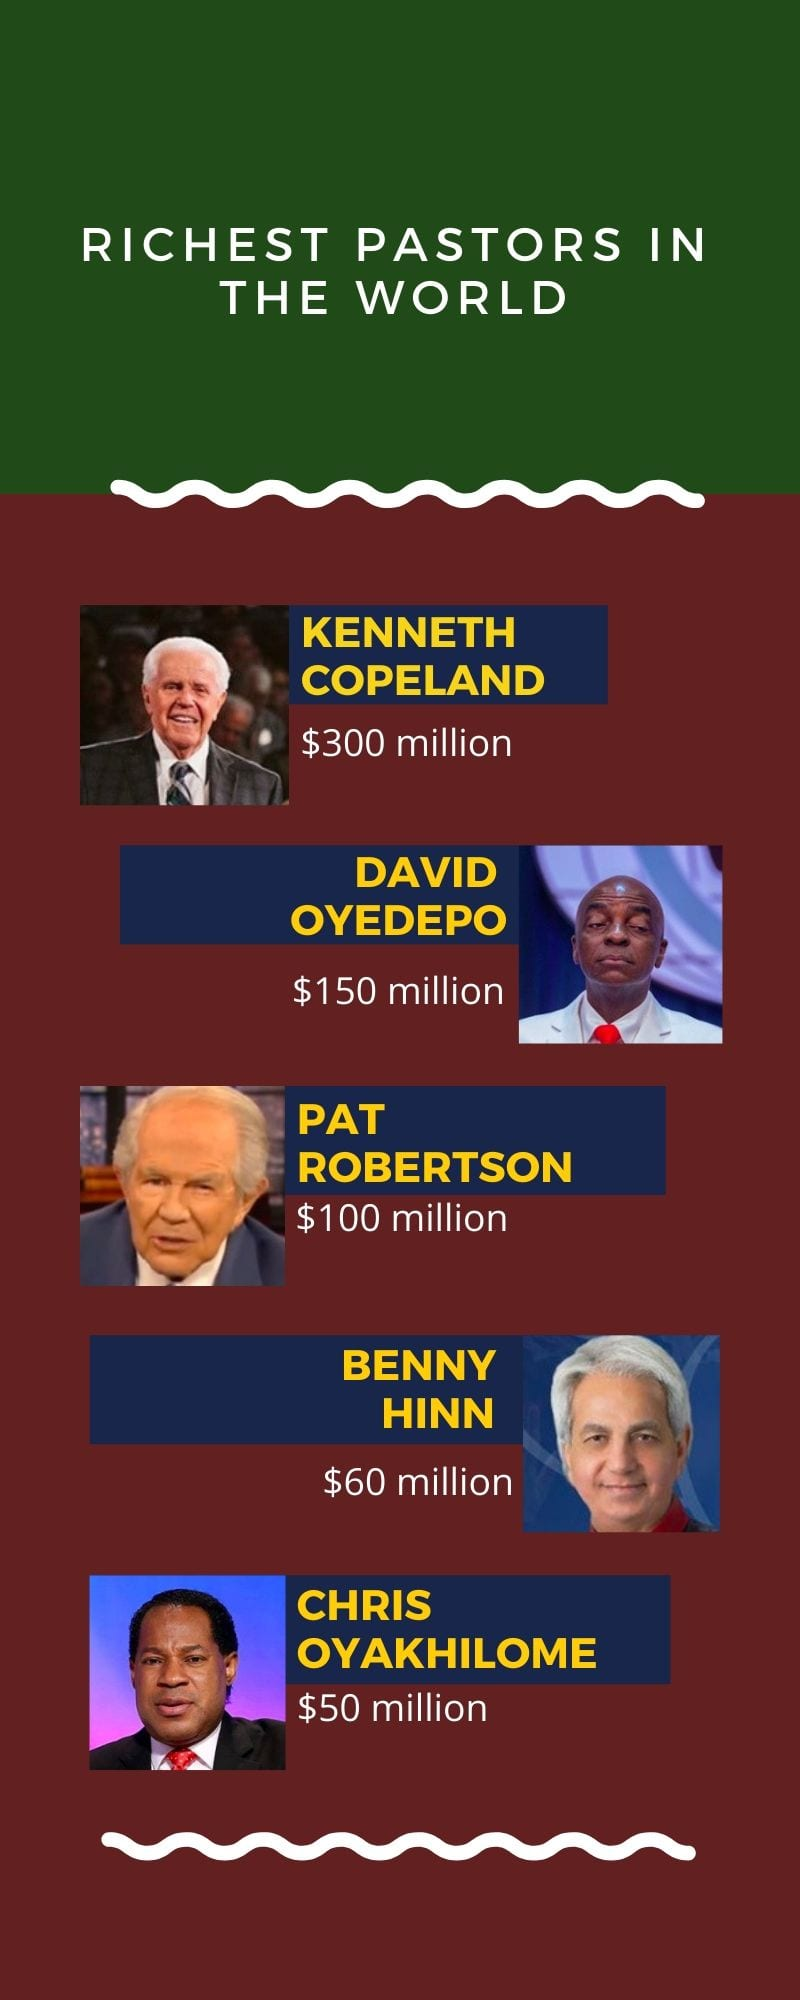 richest pastors in the world in 2020